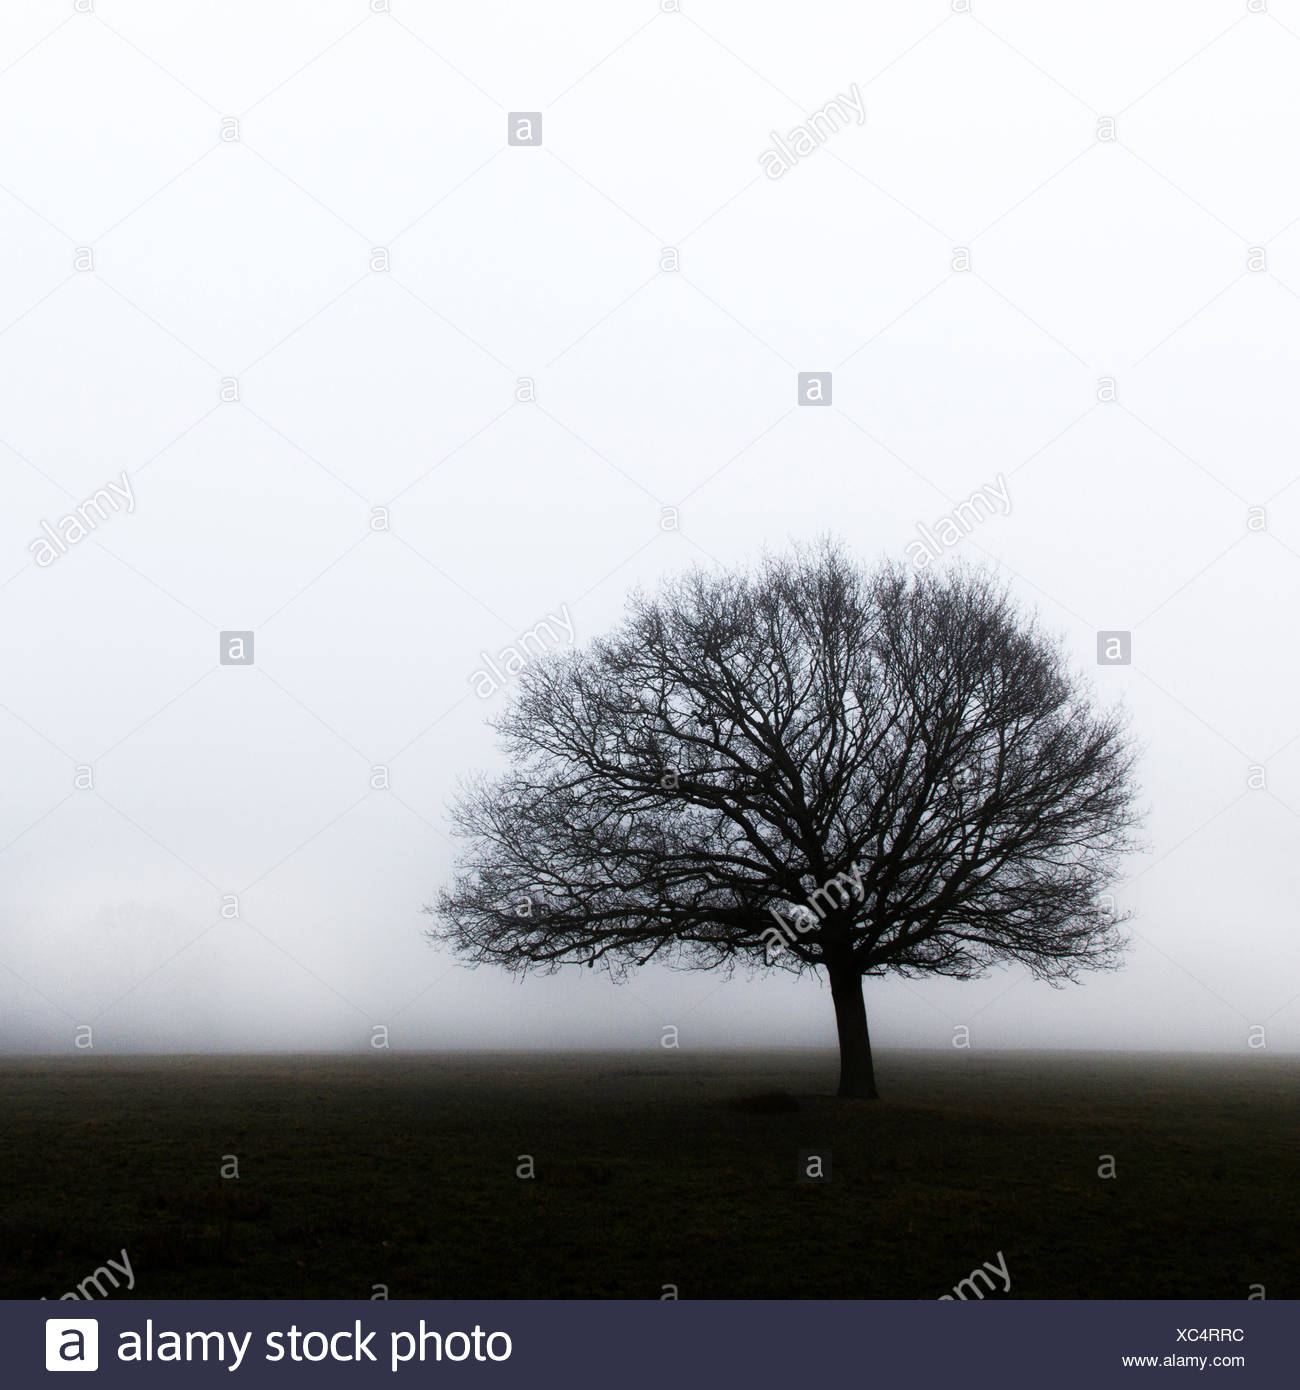 Lone tree in the mist - Stock Image